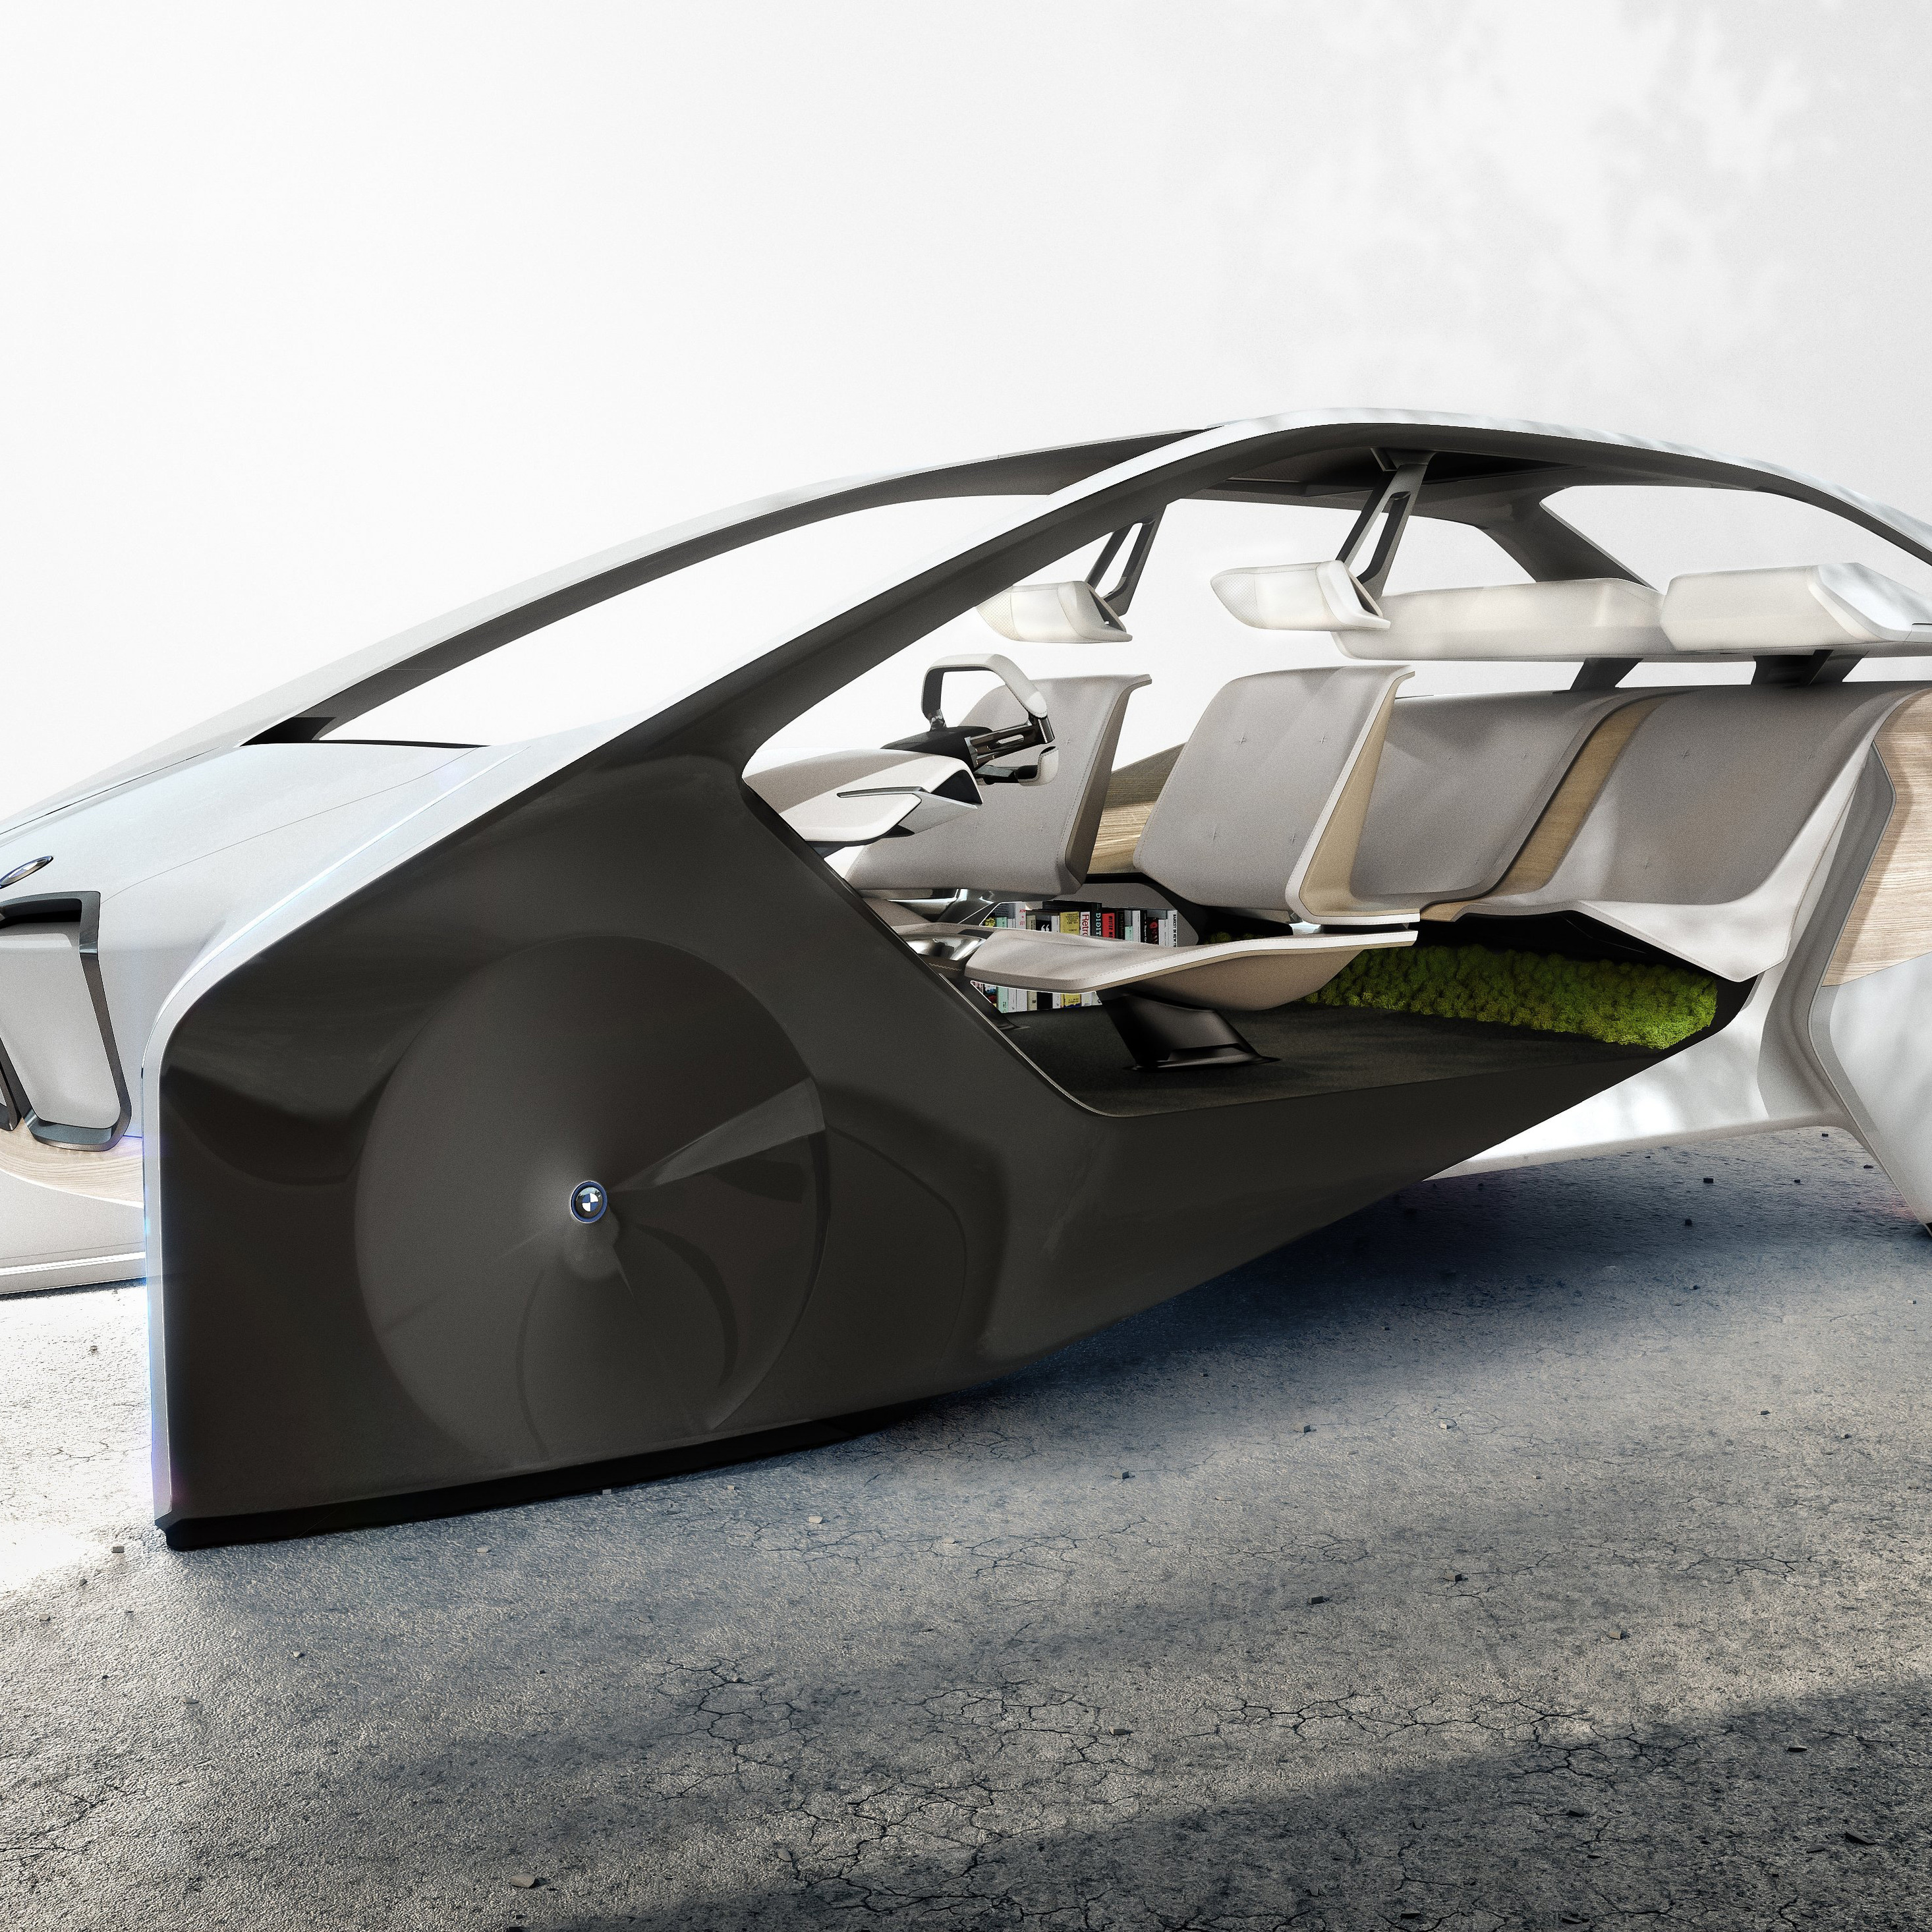 bmw-i-inside-future-concept-car-2017-image.jpg